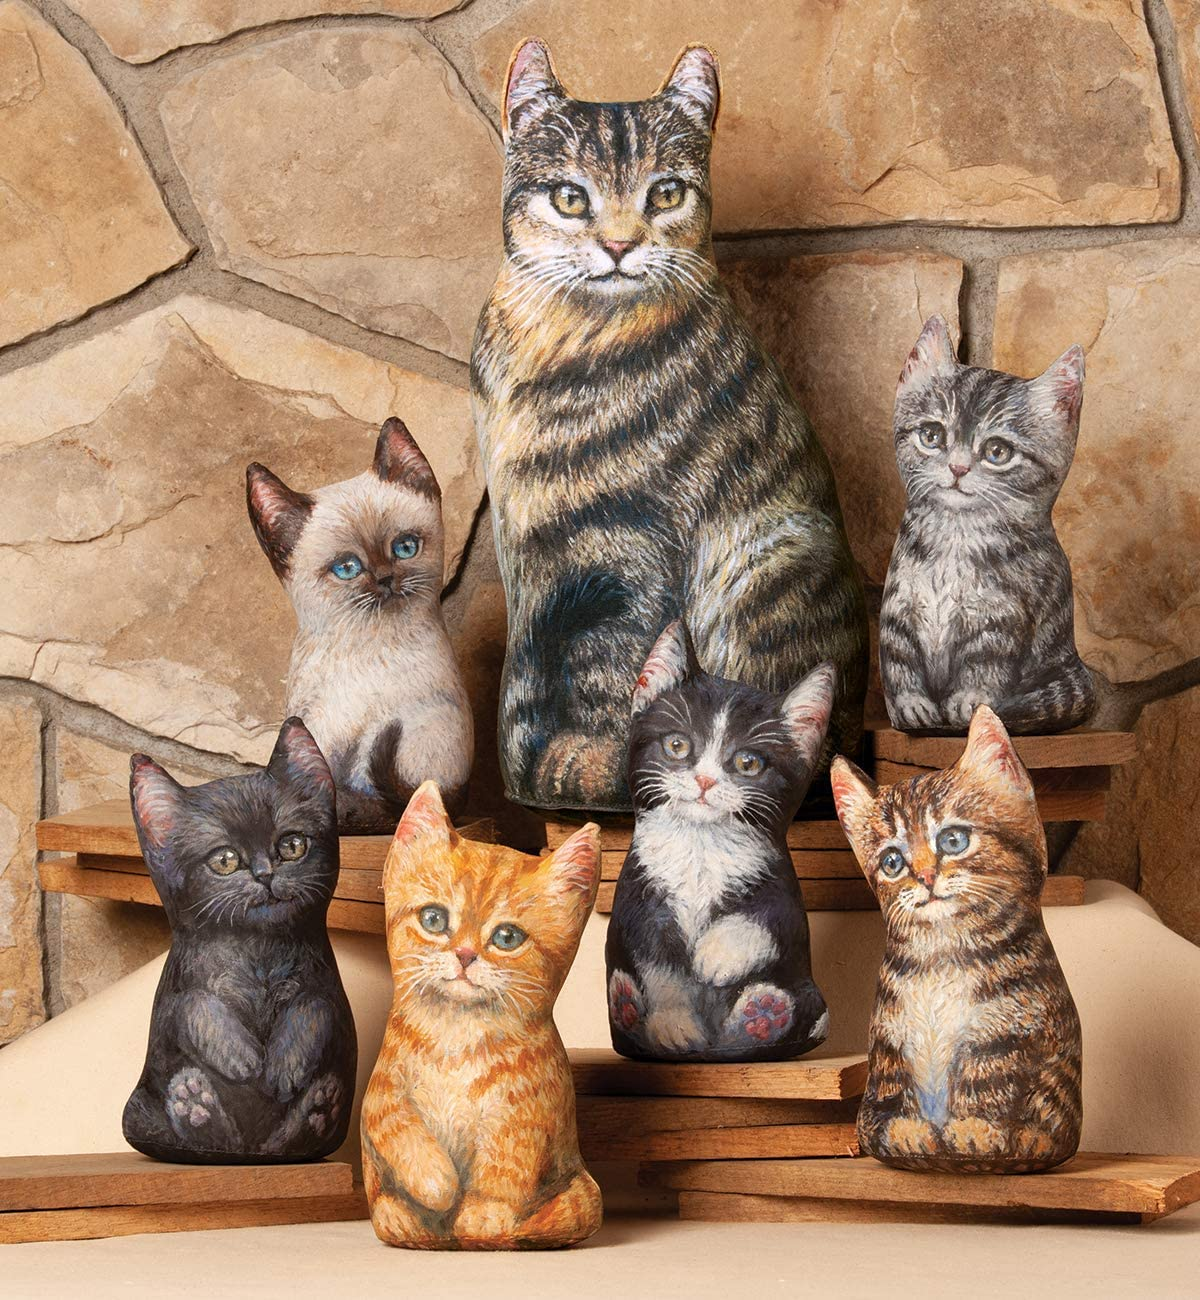 Fiddler's Elbow Home Decor Accent Kittens | Artwork by Amy Brackenbury | 6 Styles | Office Decor | Great Gifts for Cat Lovers (Grey Tabby)